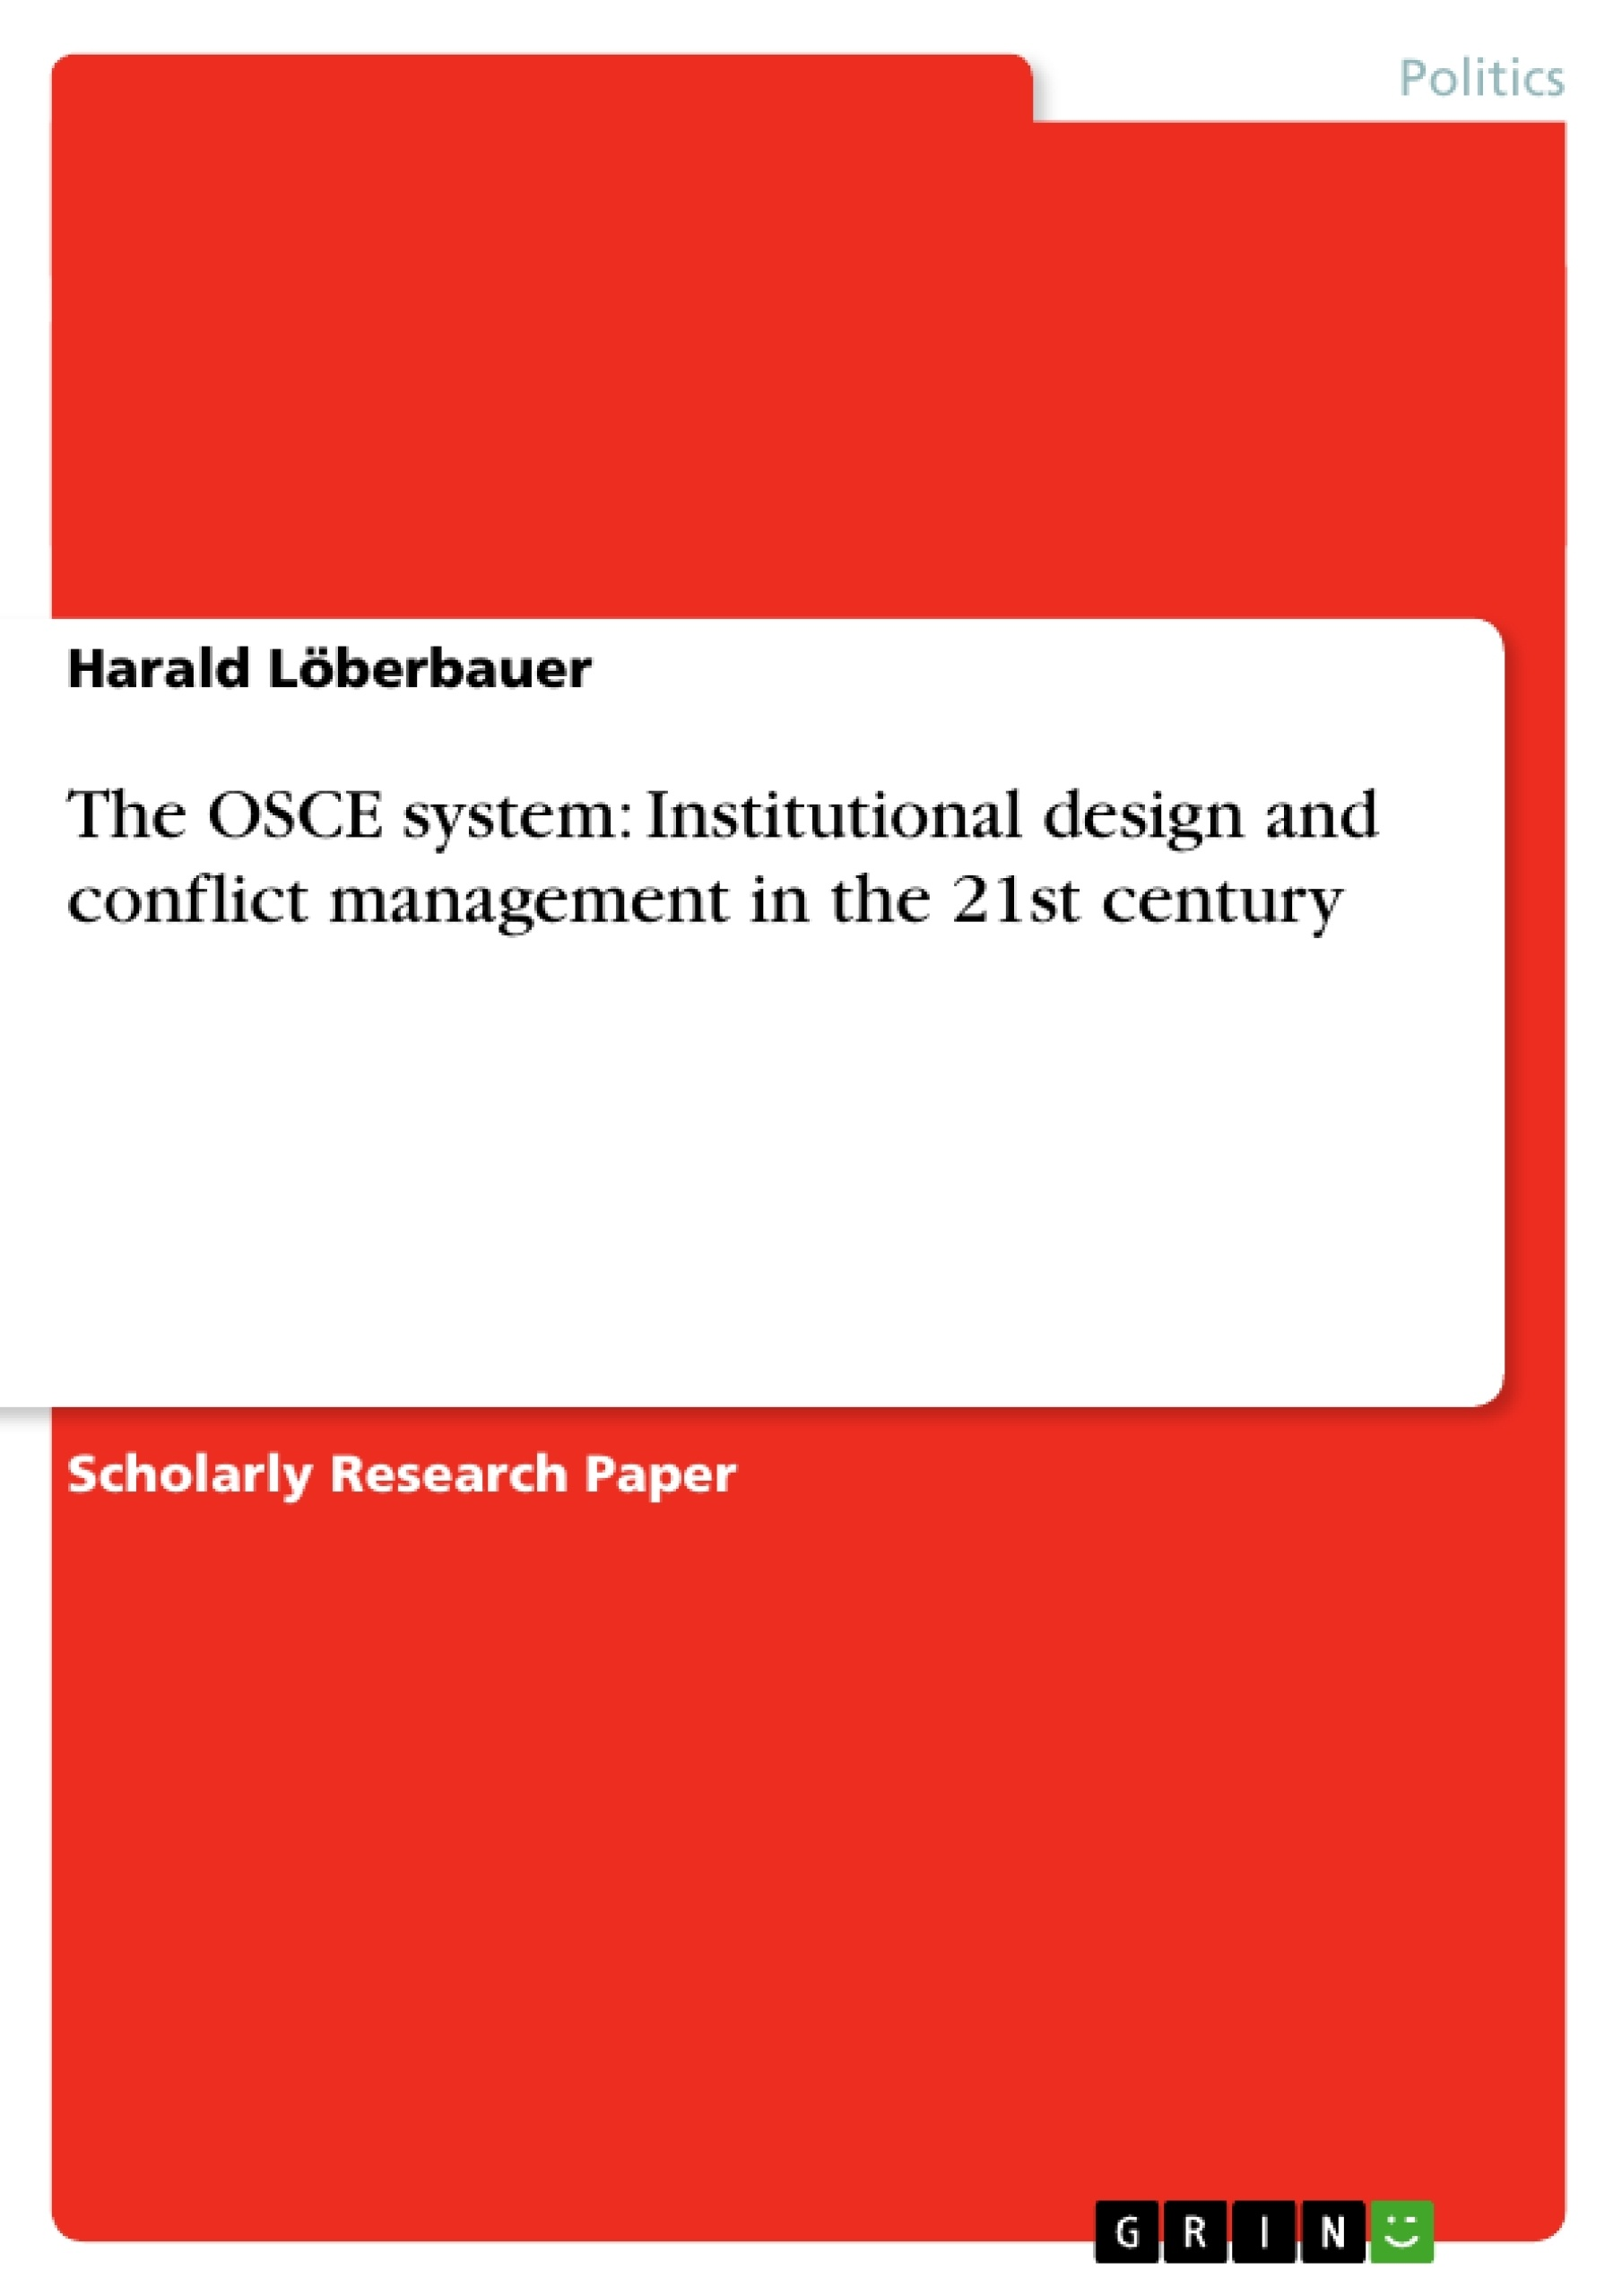 Title: The OSCE system: Institutional design and conflict management in the 21st century